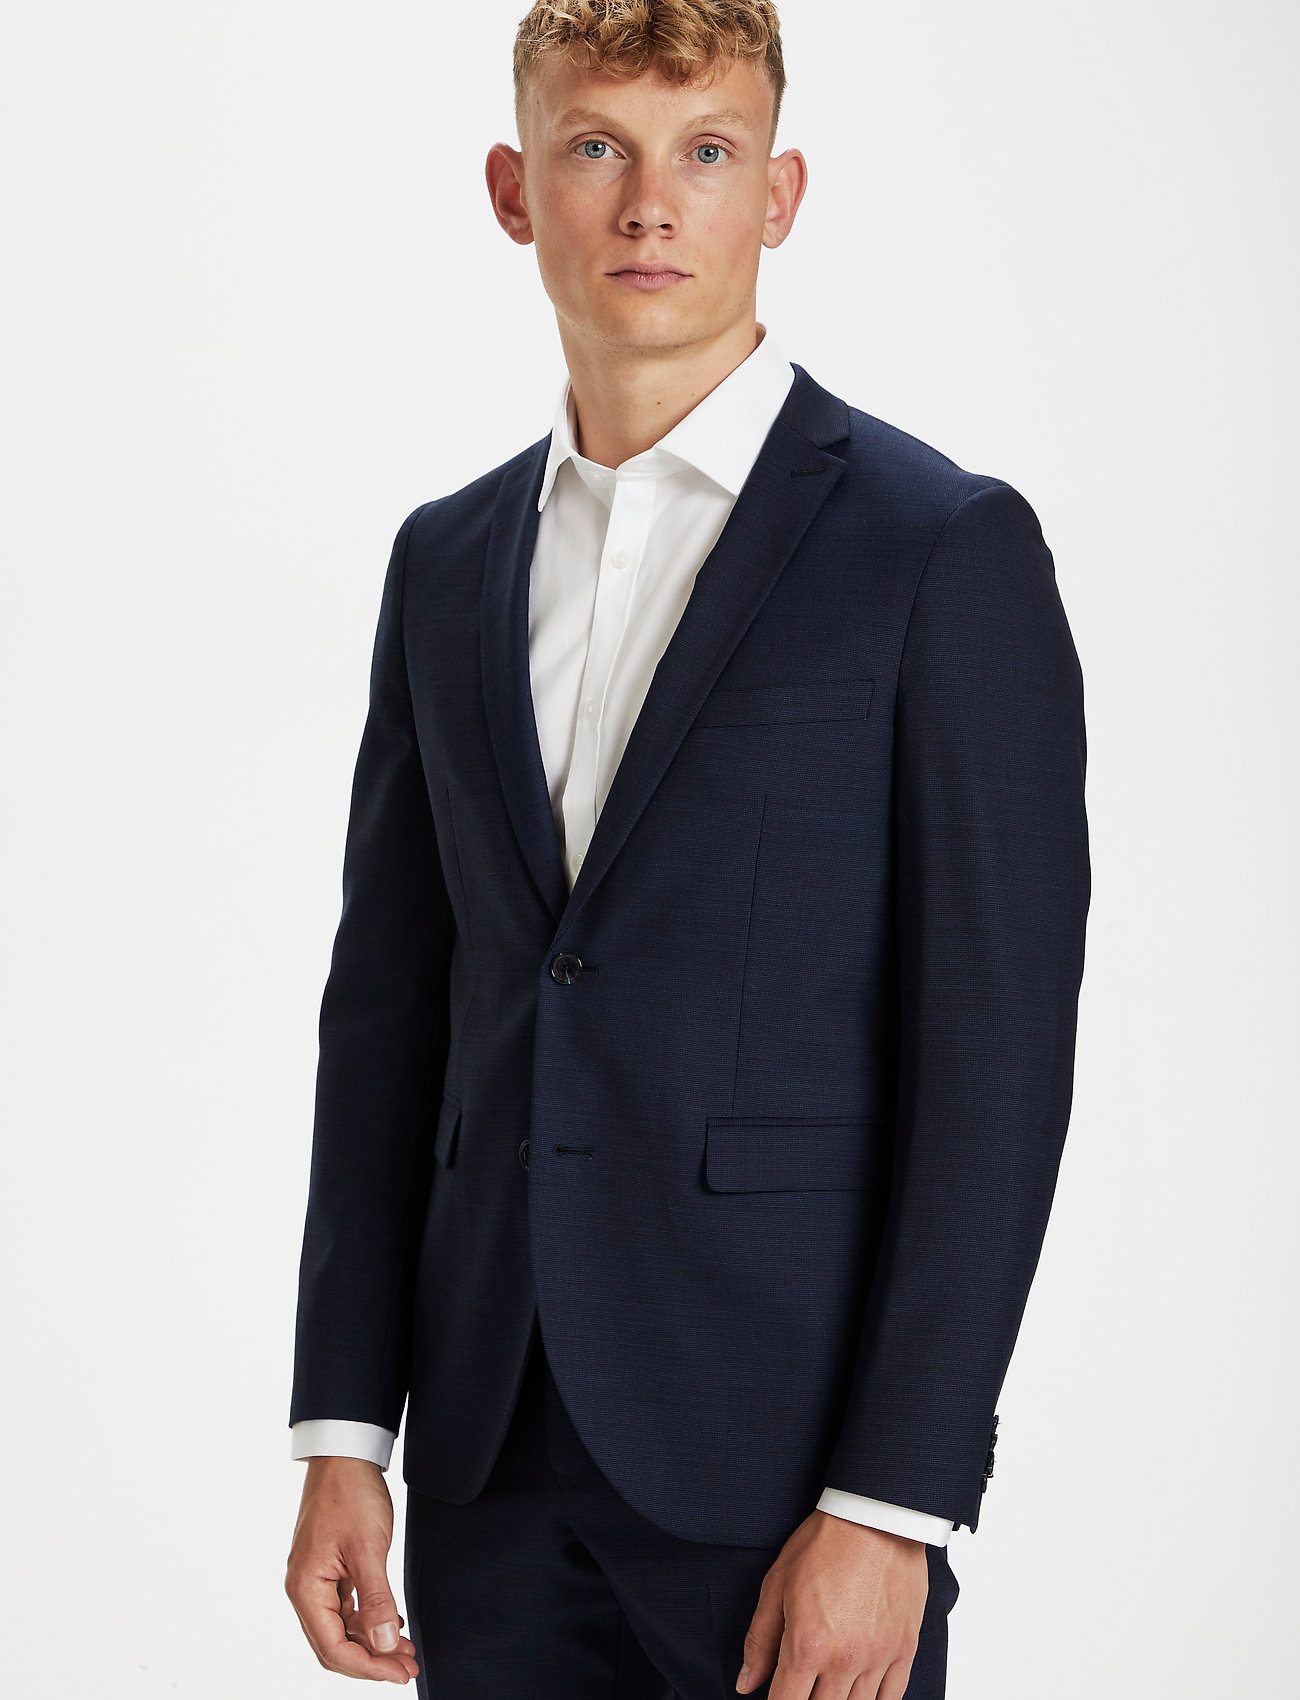 Ink Washable Suit (Ink Blue) (194.35 €) - Matinique gRVPl